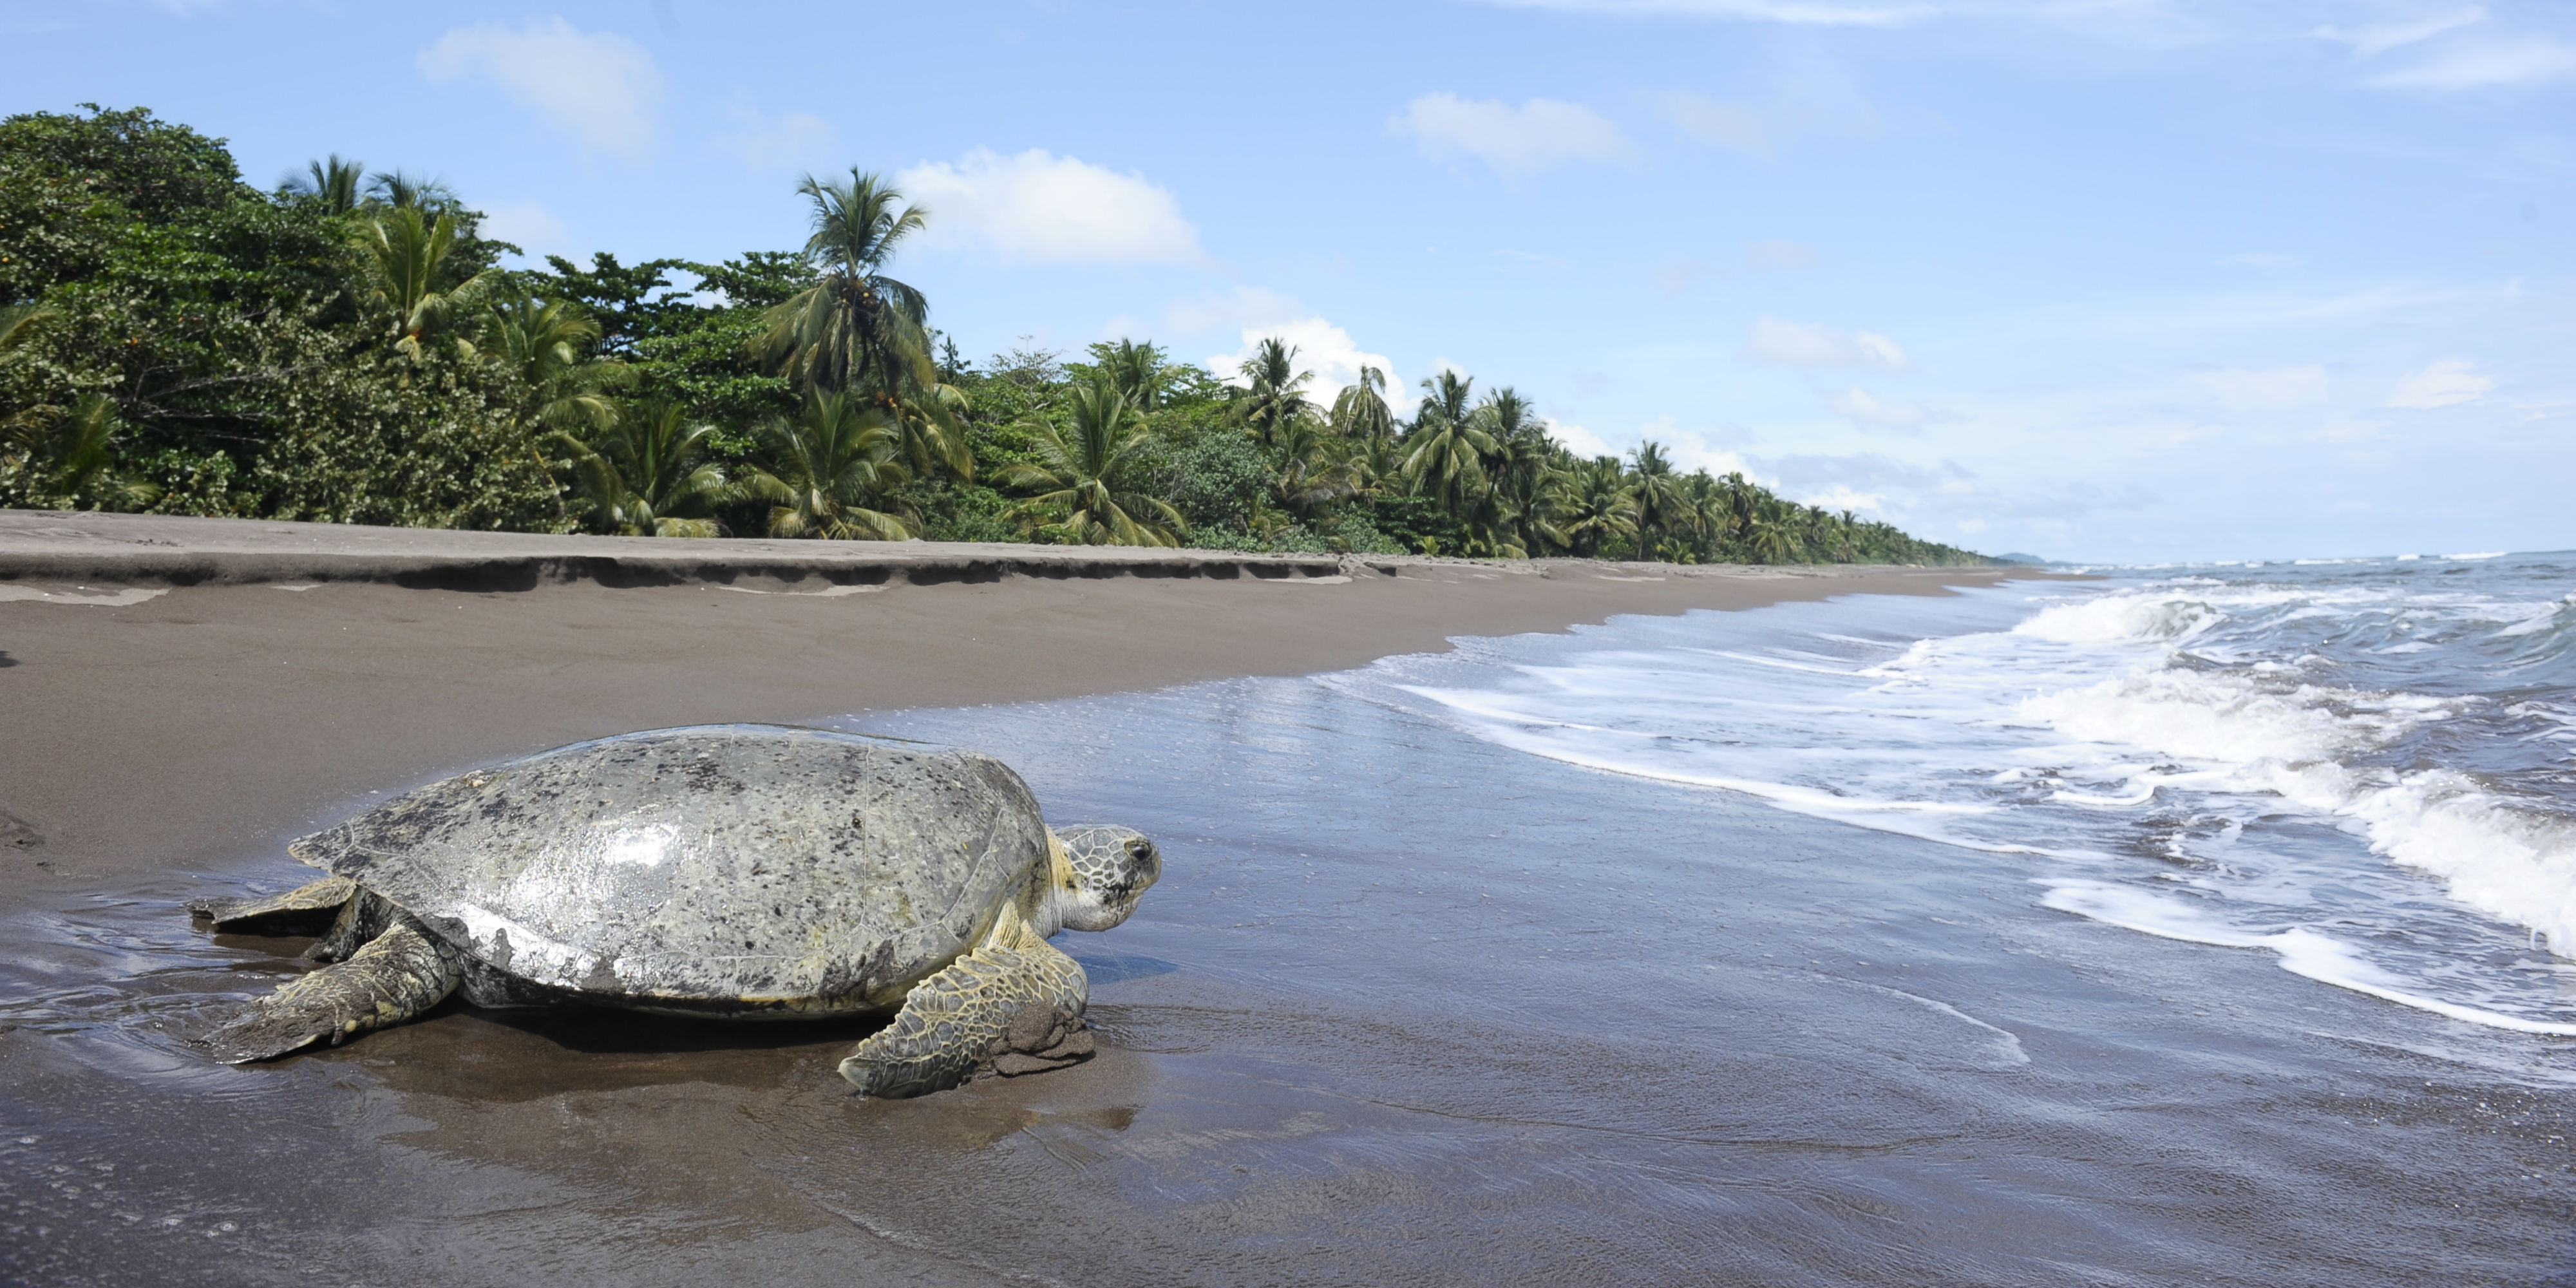 Costa Rica sea turtles are part of a unique predator-prey interaction with jaguars in Tortuguero National Park, Costa Rica.